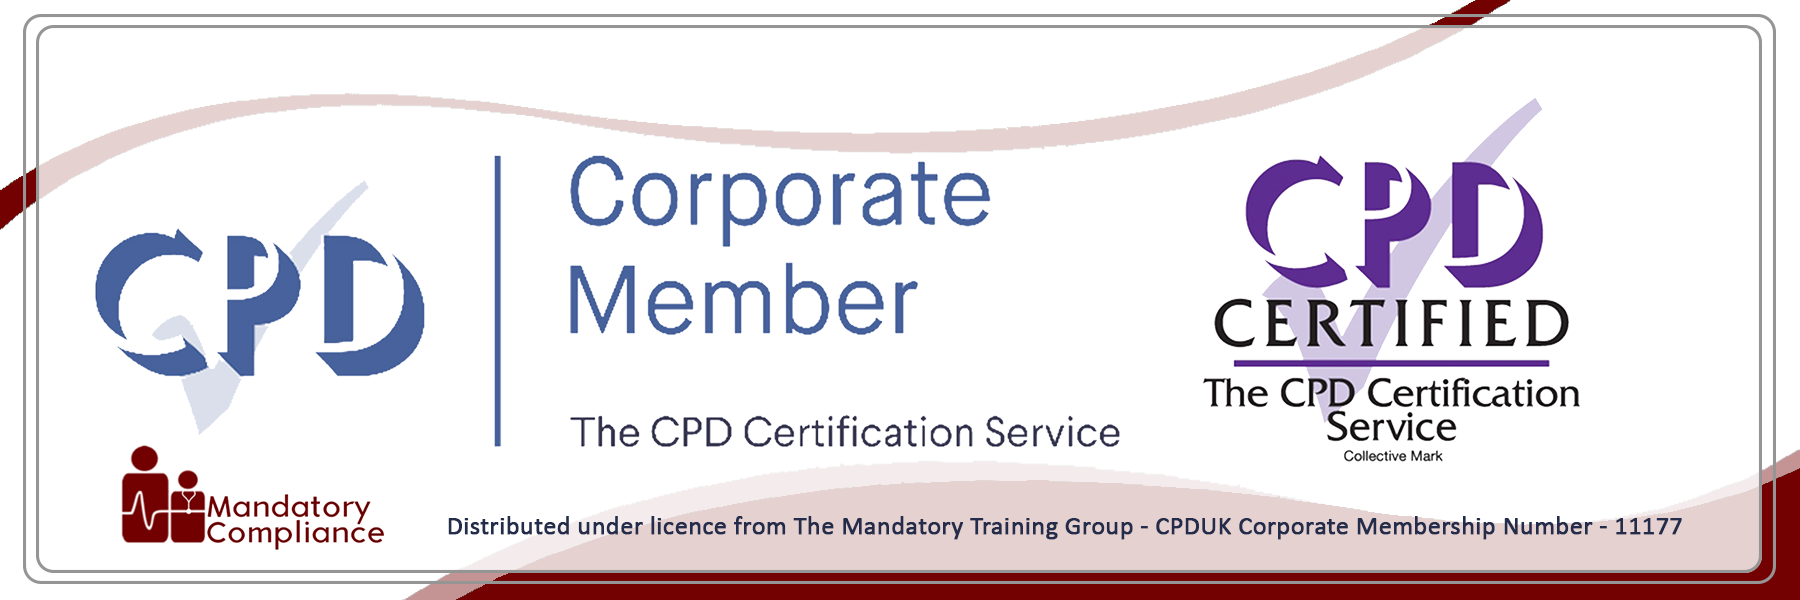 Infection Prevention and Control - Level 2 - Online Training Course - CPD Accredited - Mandatory Compliance UK -